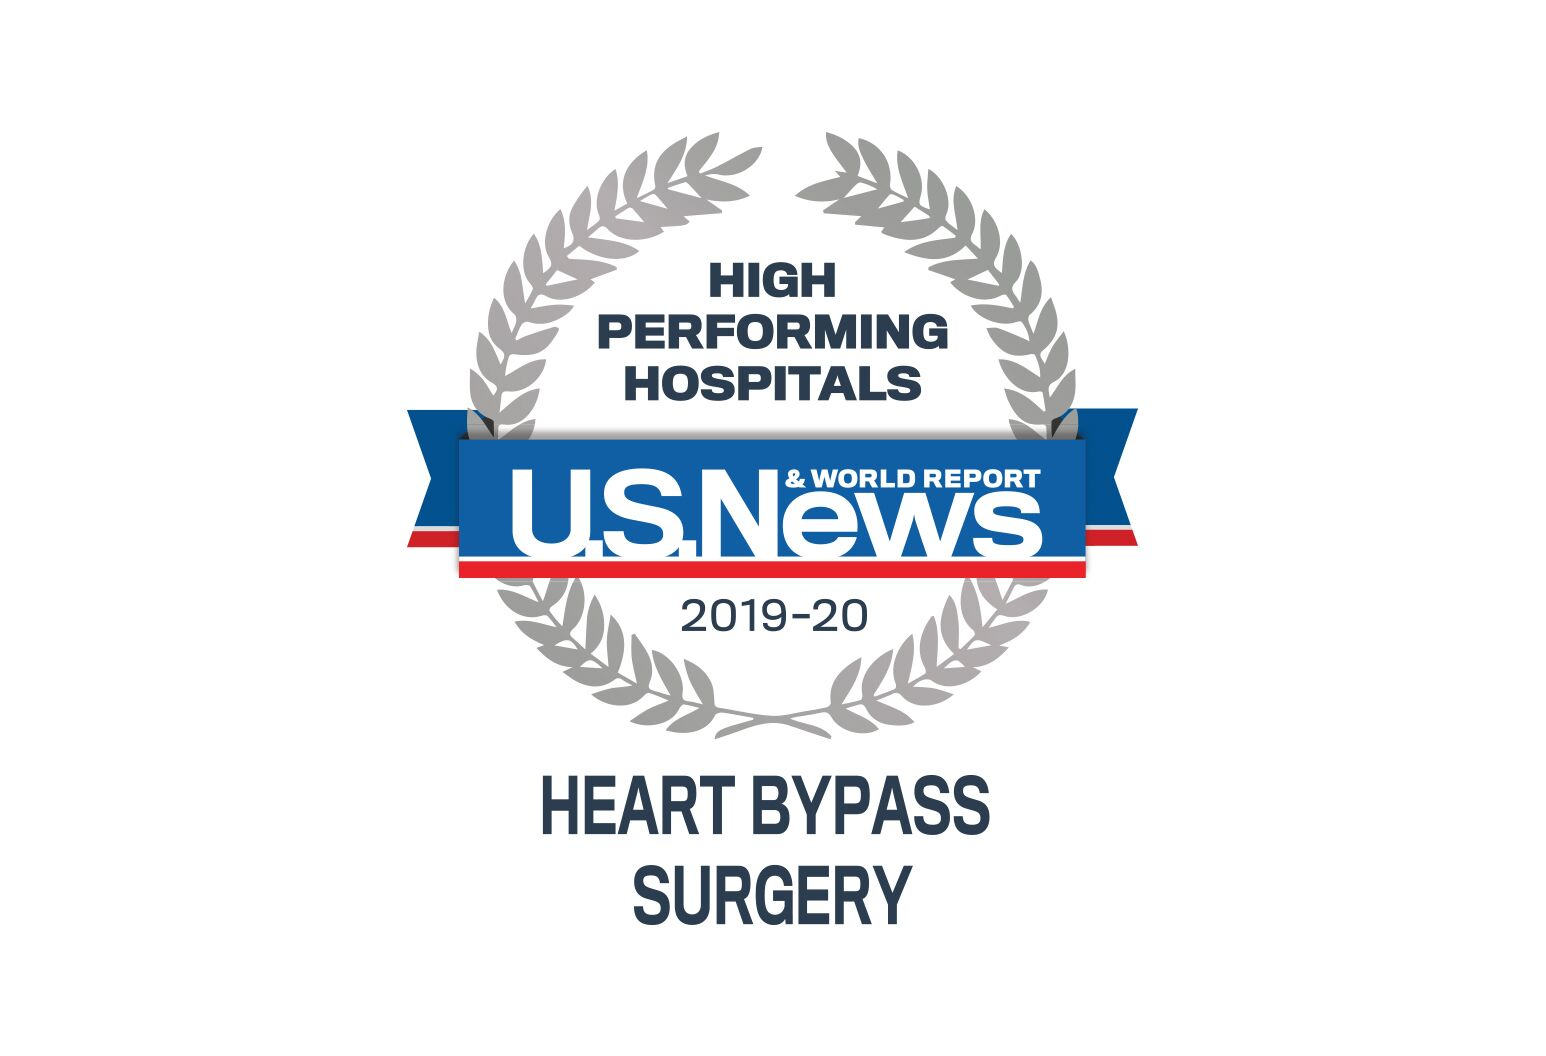 U.S news and report heart bypass surgery badge